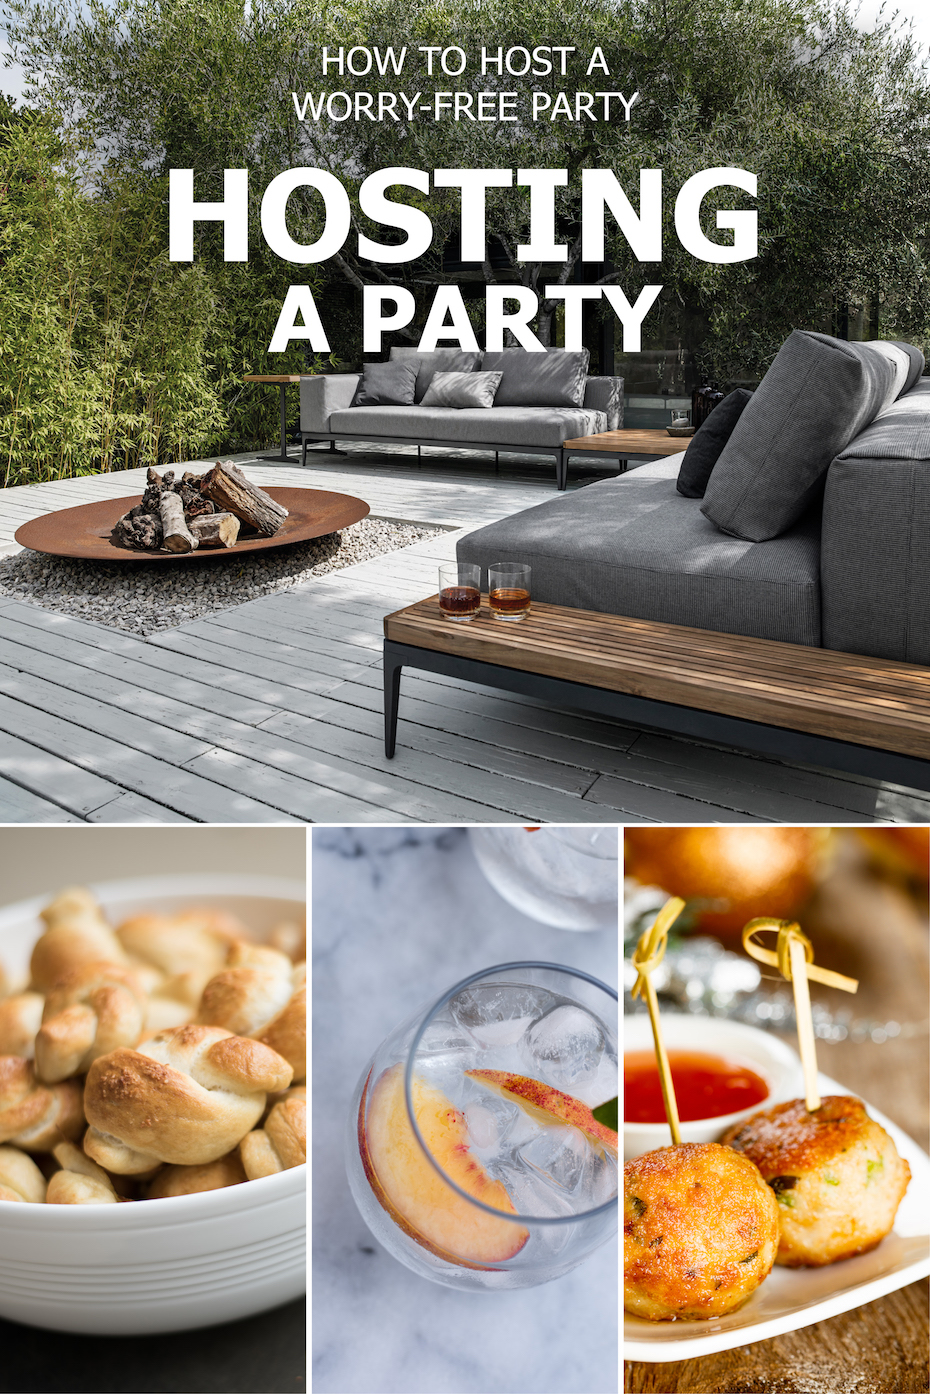 Comfortable seating, serving platters, and stemless glassware make for hosting a worry-free party.